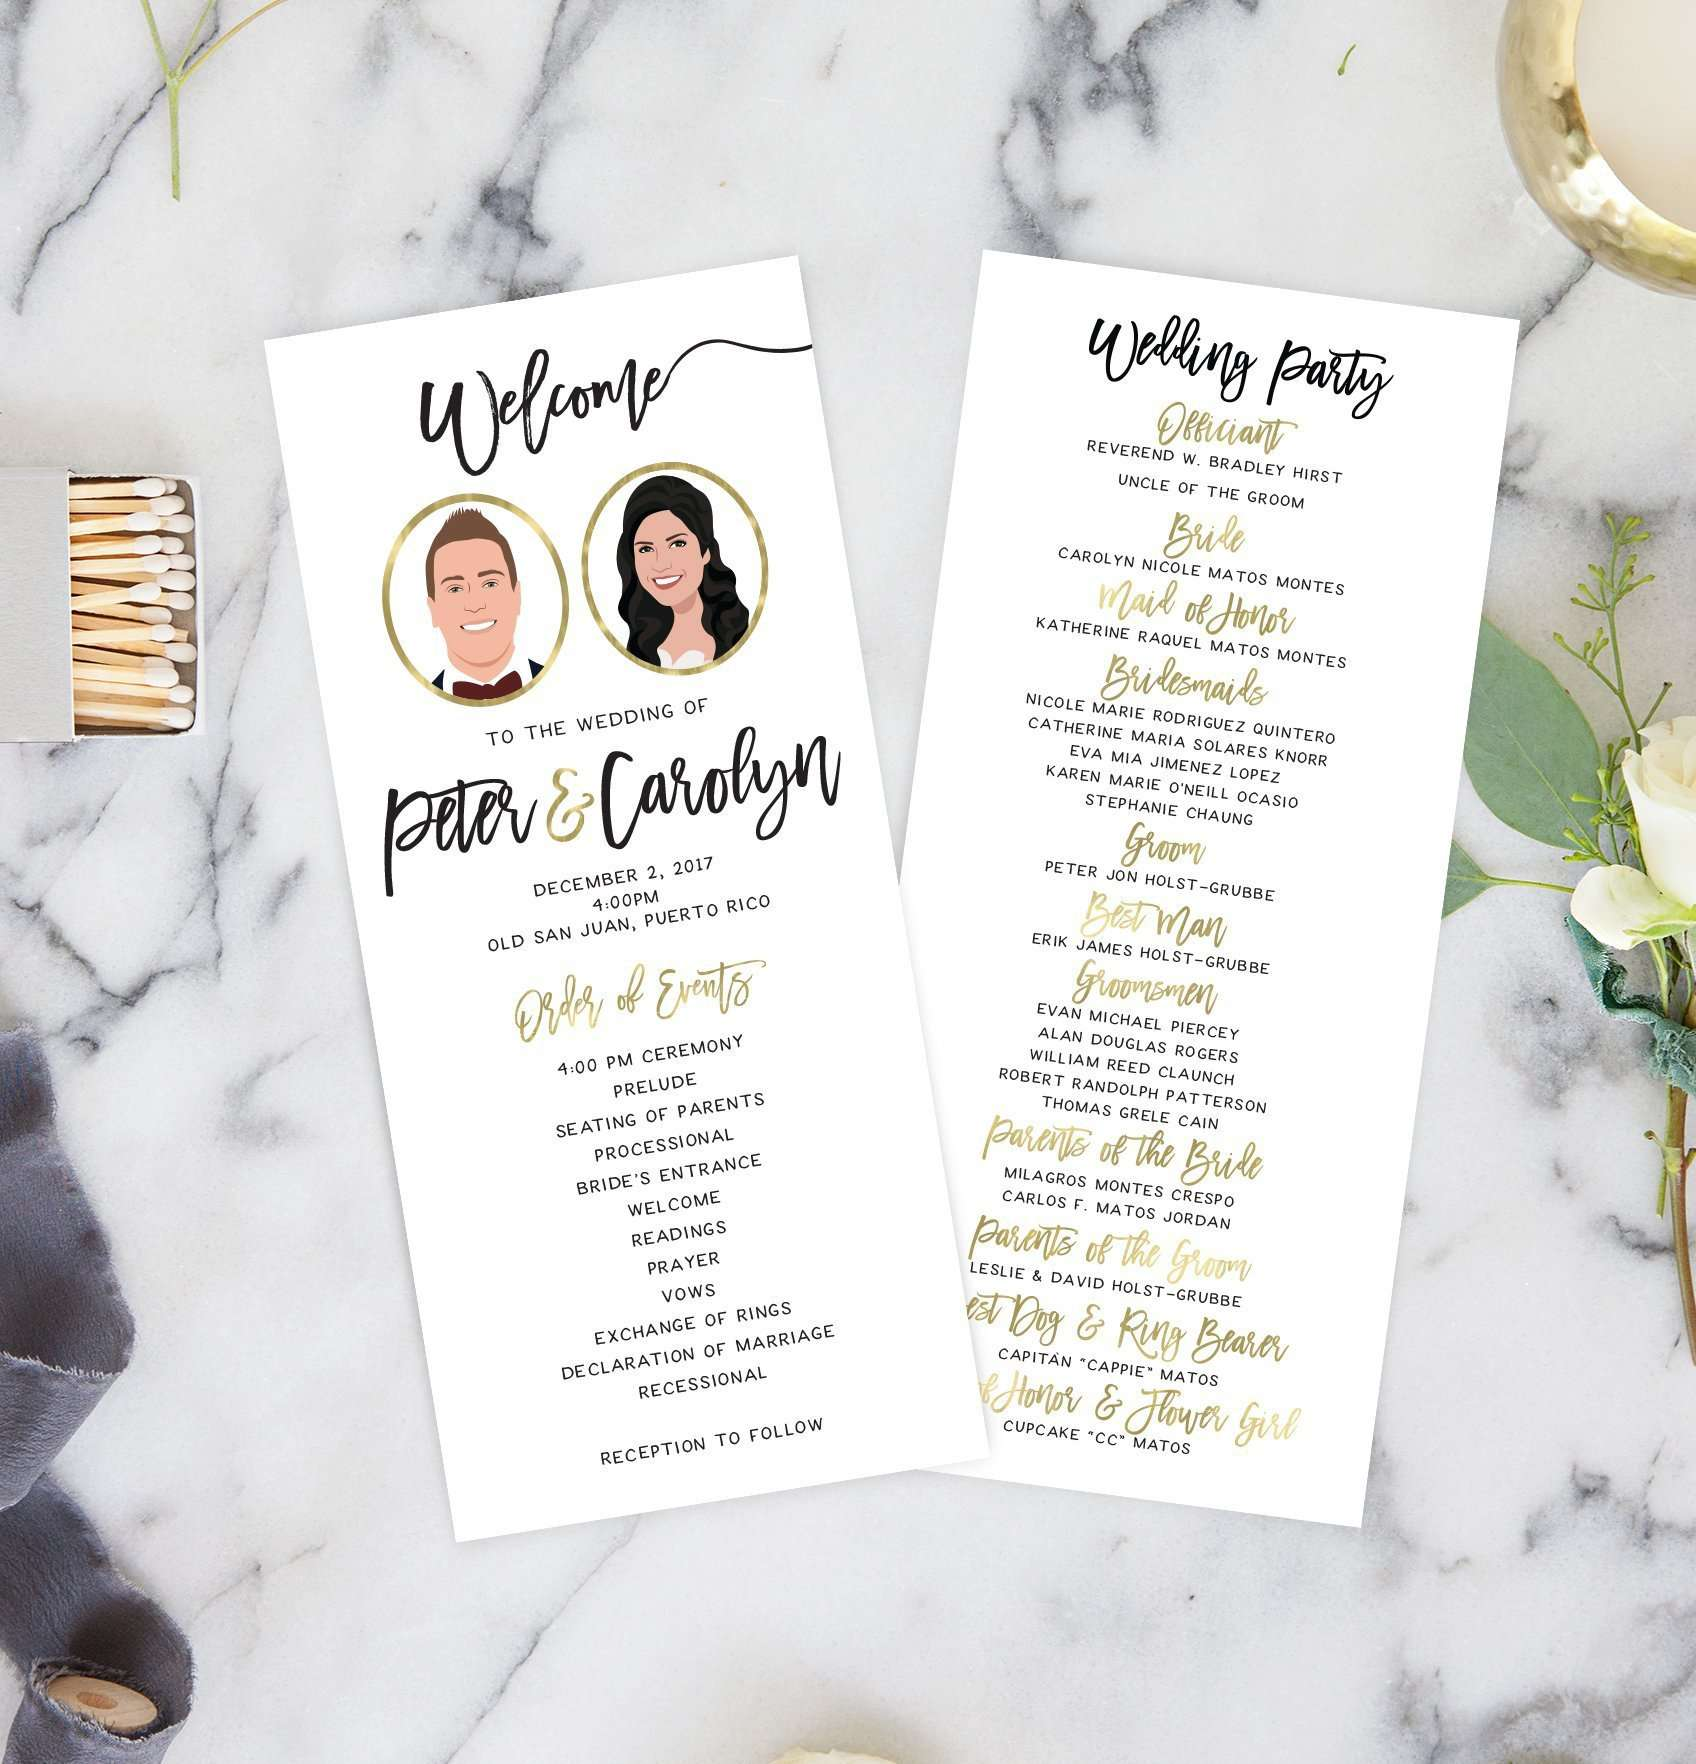 Wedding Ceremony Programs With Portraits